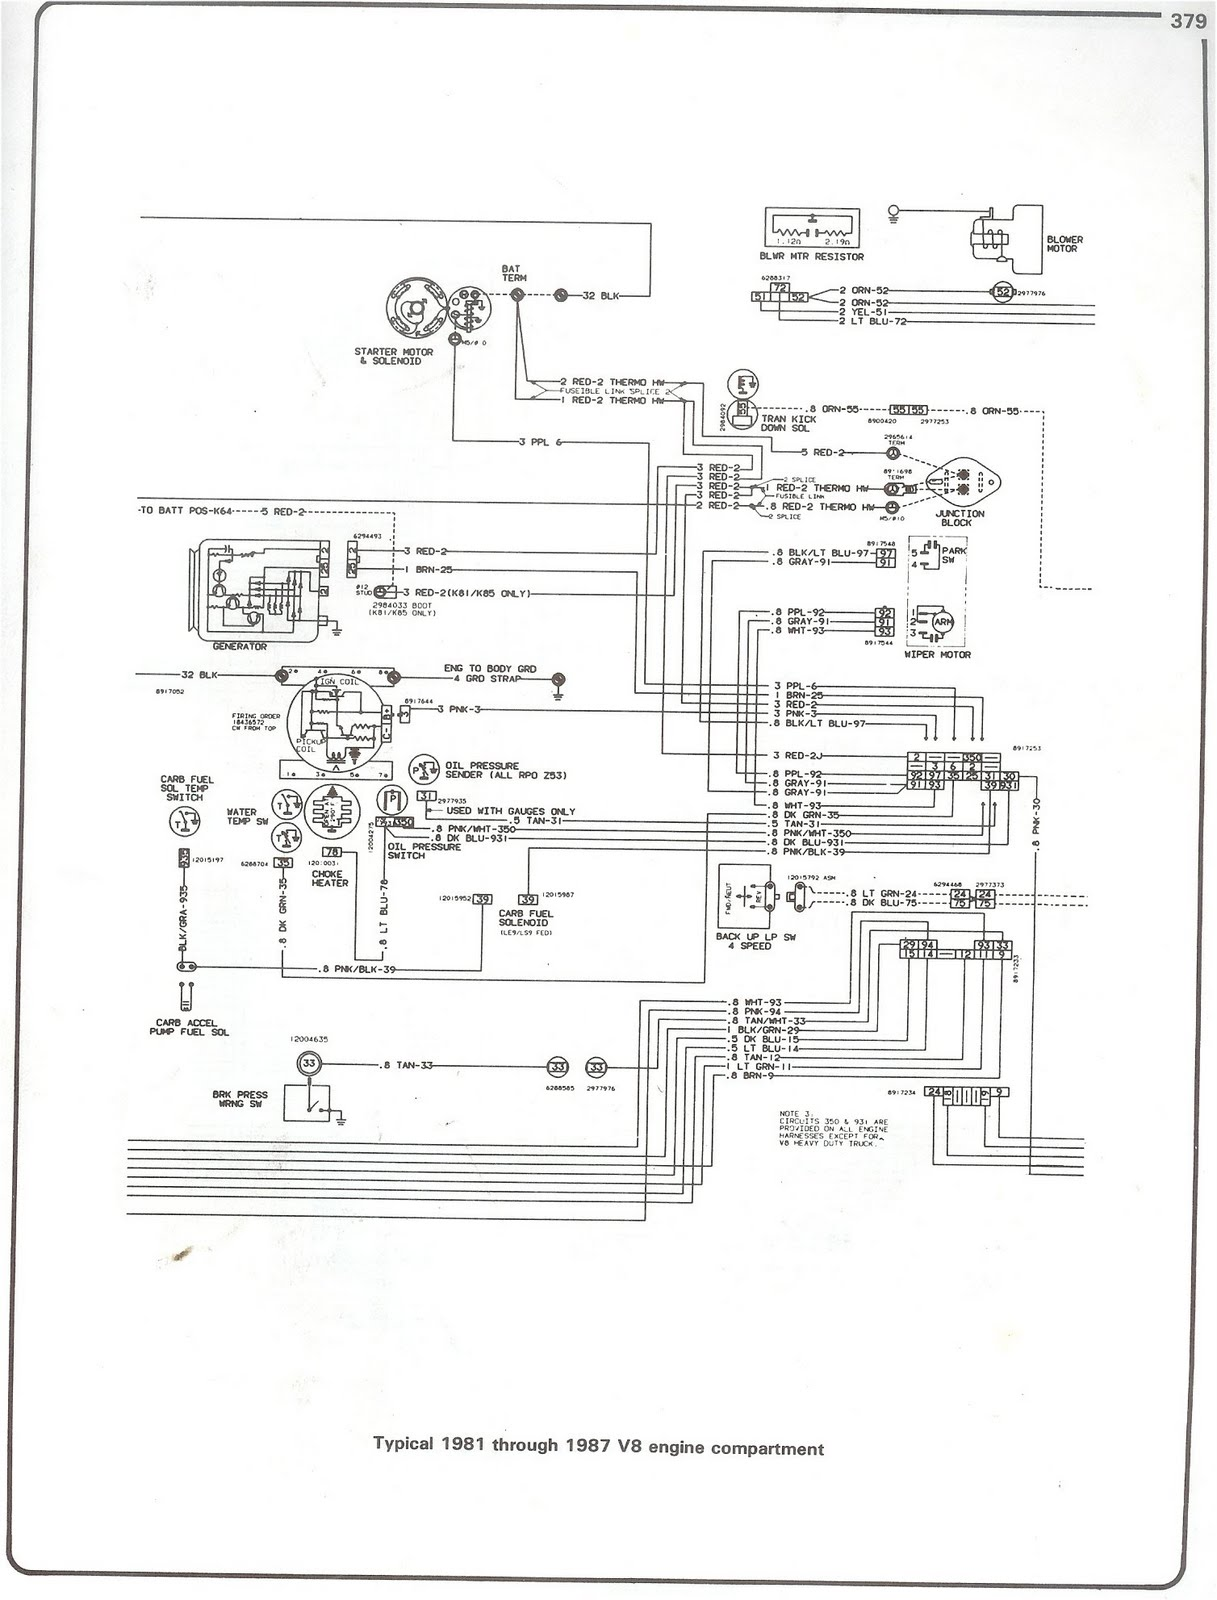 small resolution of 73 caprice wiring diagram wiring library 73 caprice 4 door 85 chevy caprice fuse panel